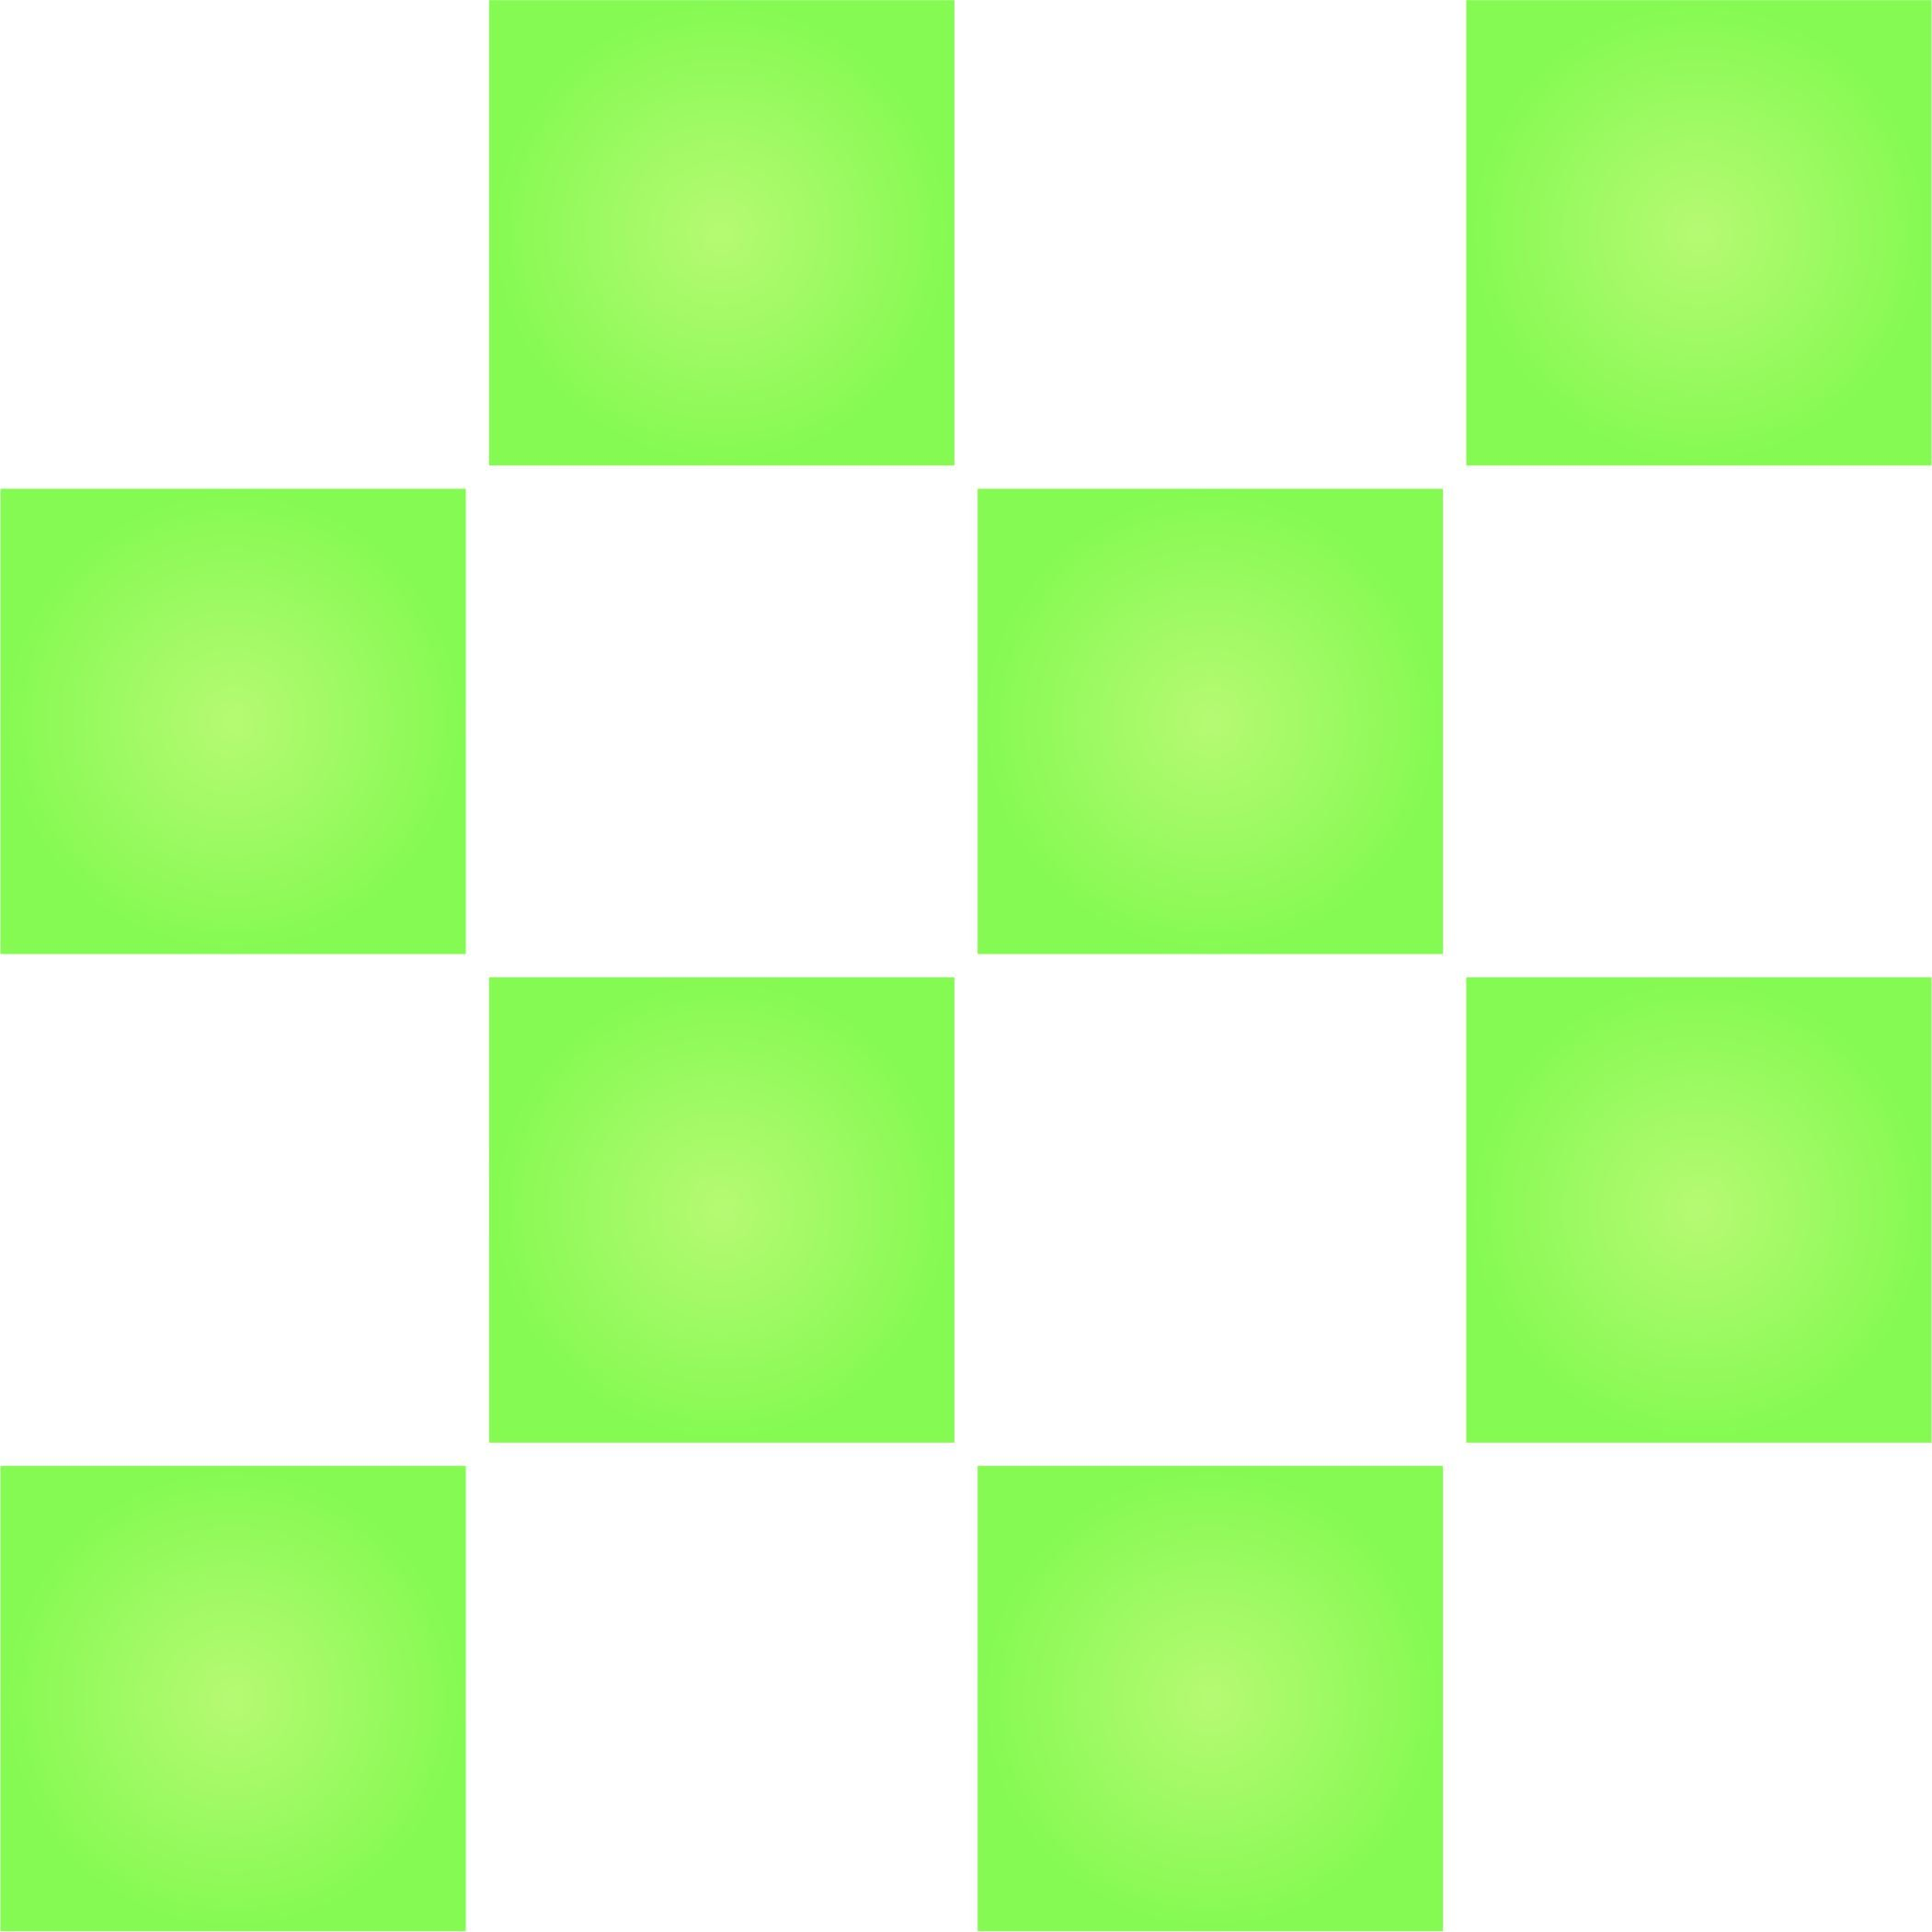 LARGE SQUARES STENCIL (size 7''w x 7''h) Reusable Stencils for Painting - Best Quality Checkerboard Wall Art Décor Ideas - Use on Walls, Floors, Fabrics, Glass, Wood, Posters, and More... by Stencils for Walls